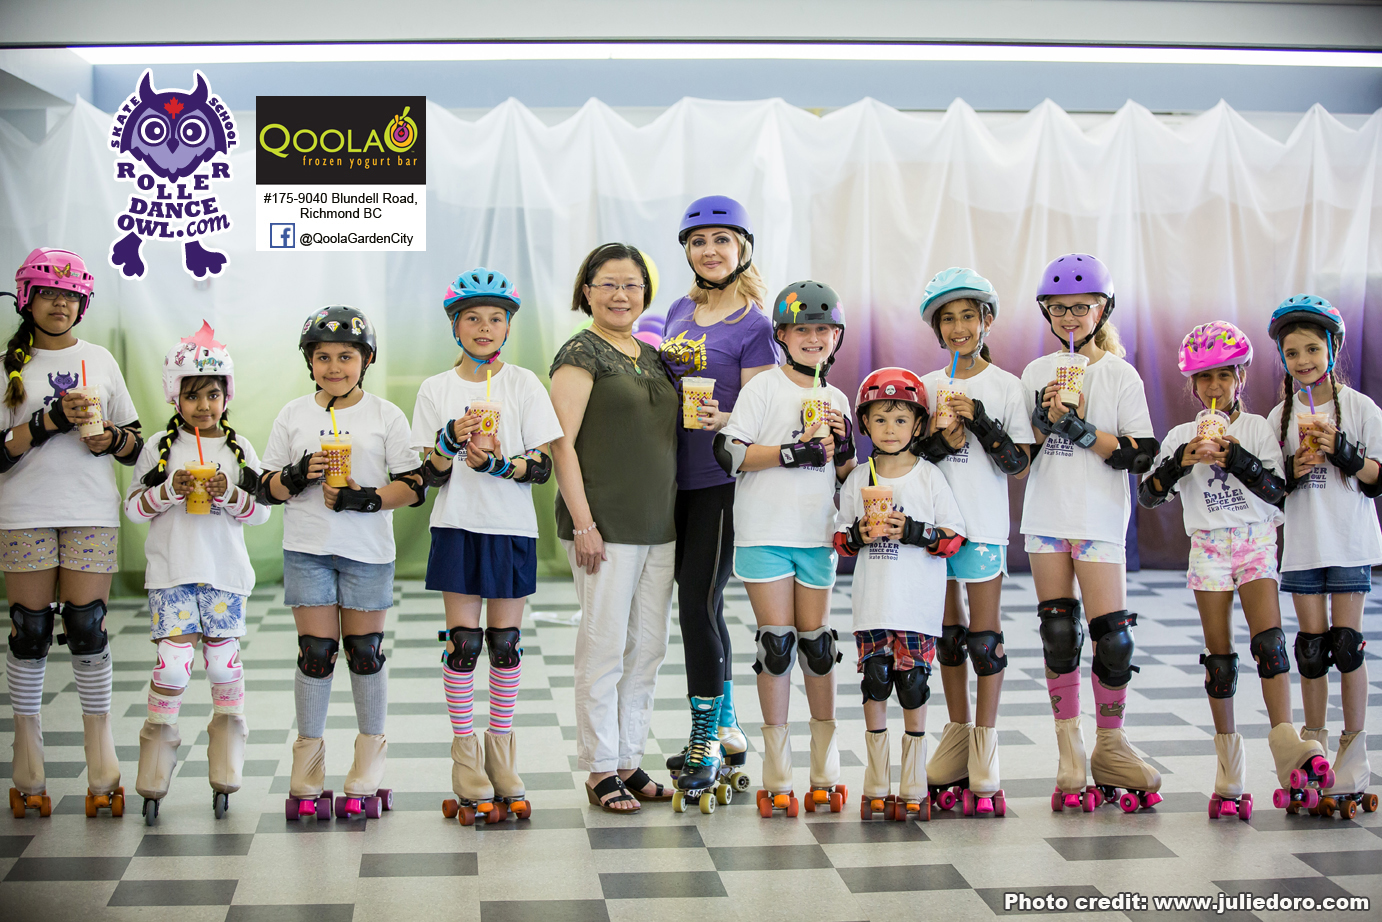 Roller Dance Owl students with sponsor of the project Qoola Yogurt - Garden City, Richmond BC.